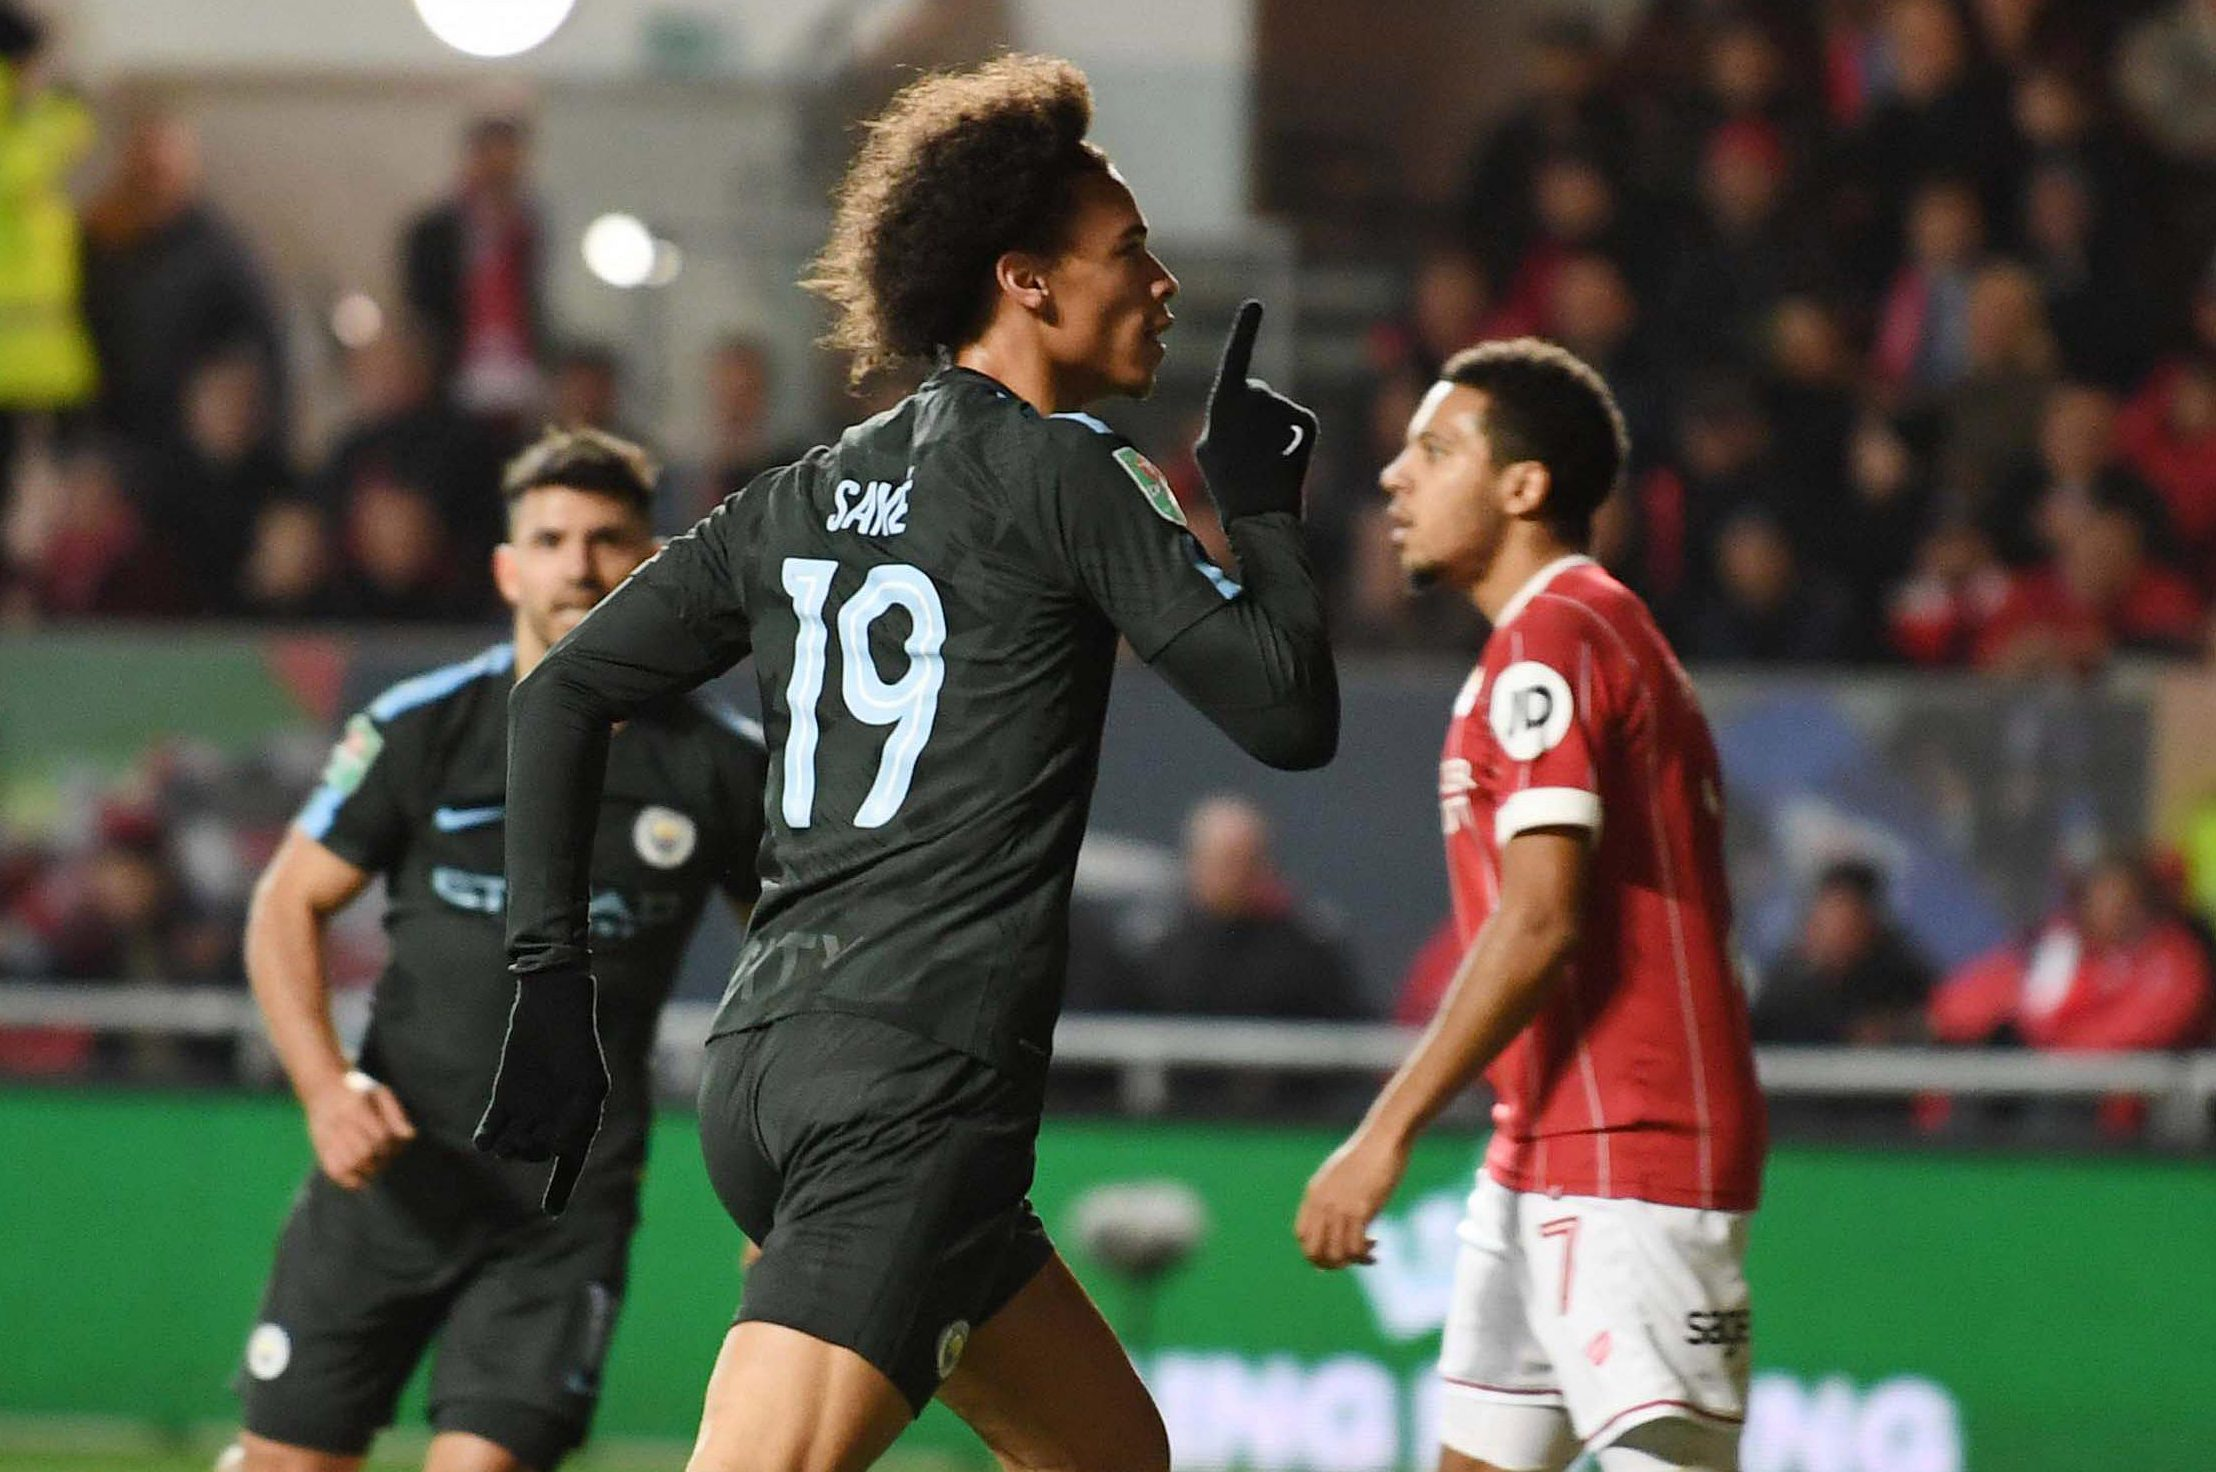 Leroy Sane scored as Man City booked their place in the Carabao Cup final